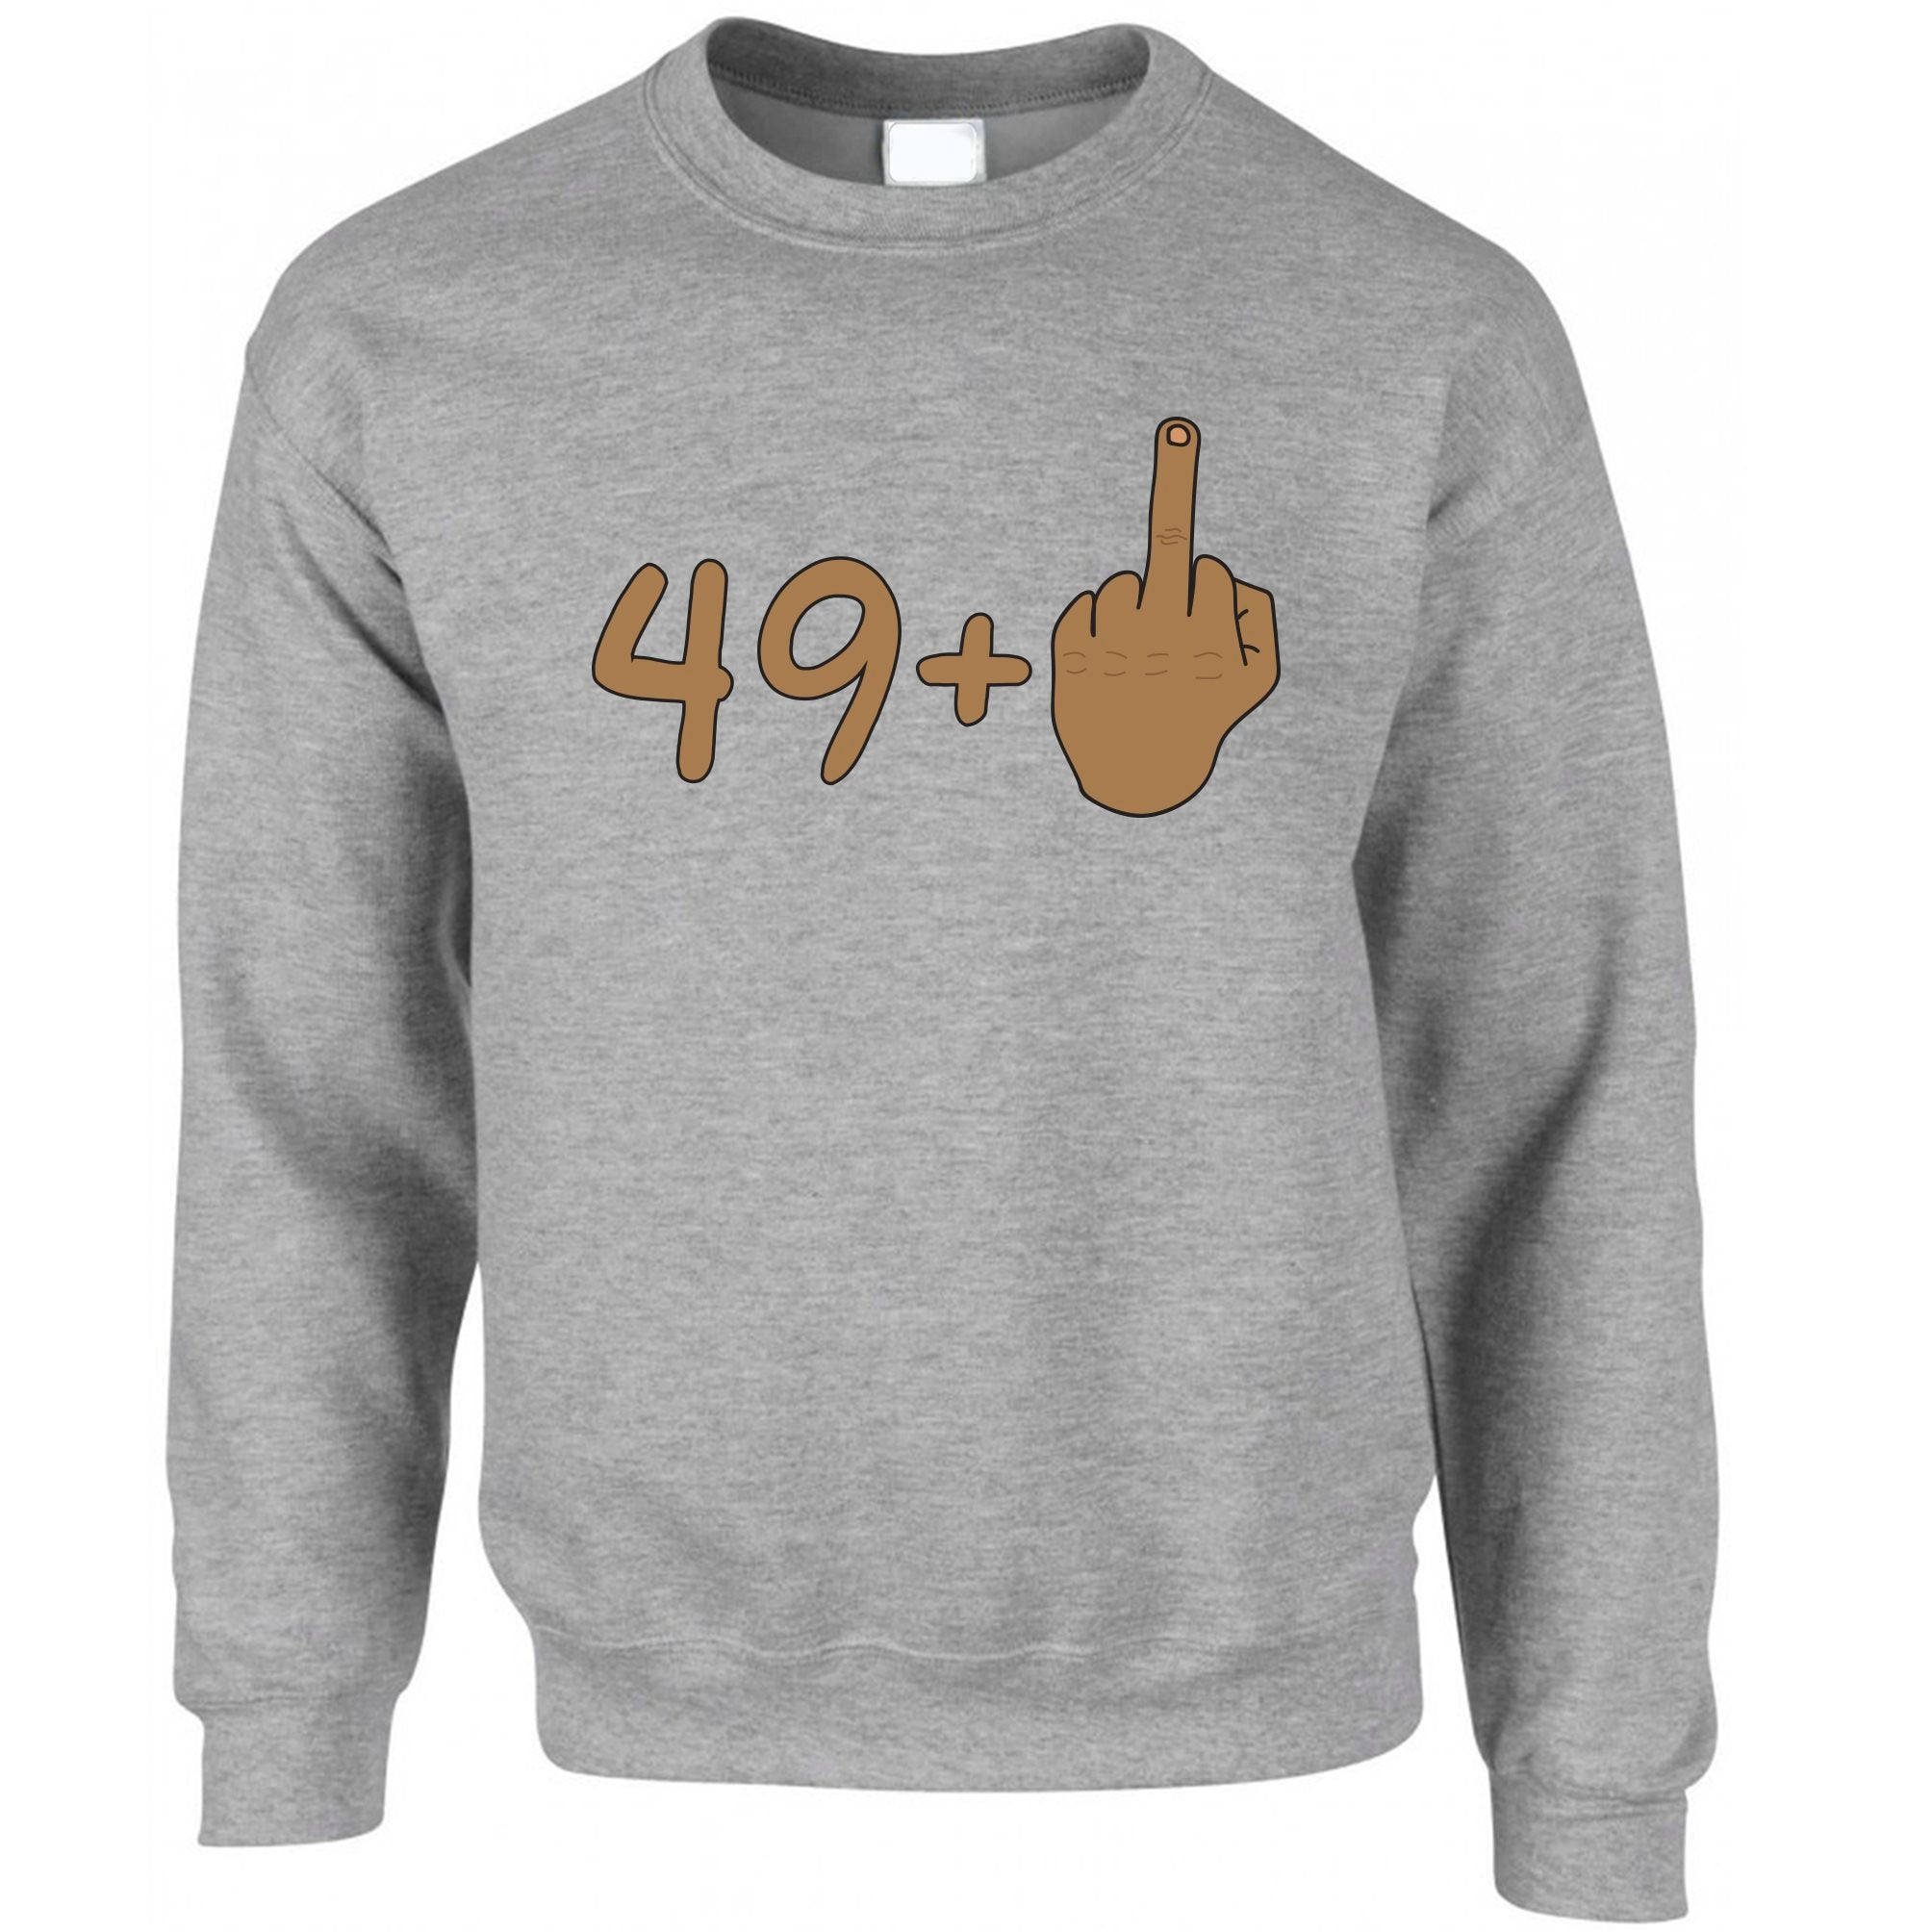 Rude 50th Birthday Jumper Tanned Middle Finger Sweatshirt Sweater